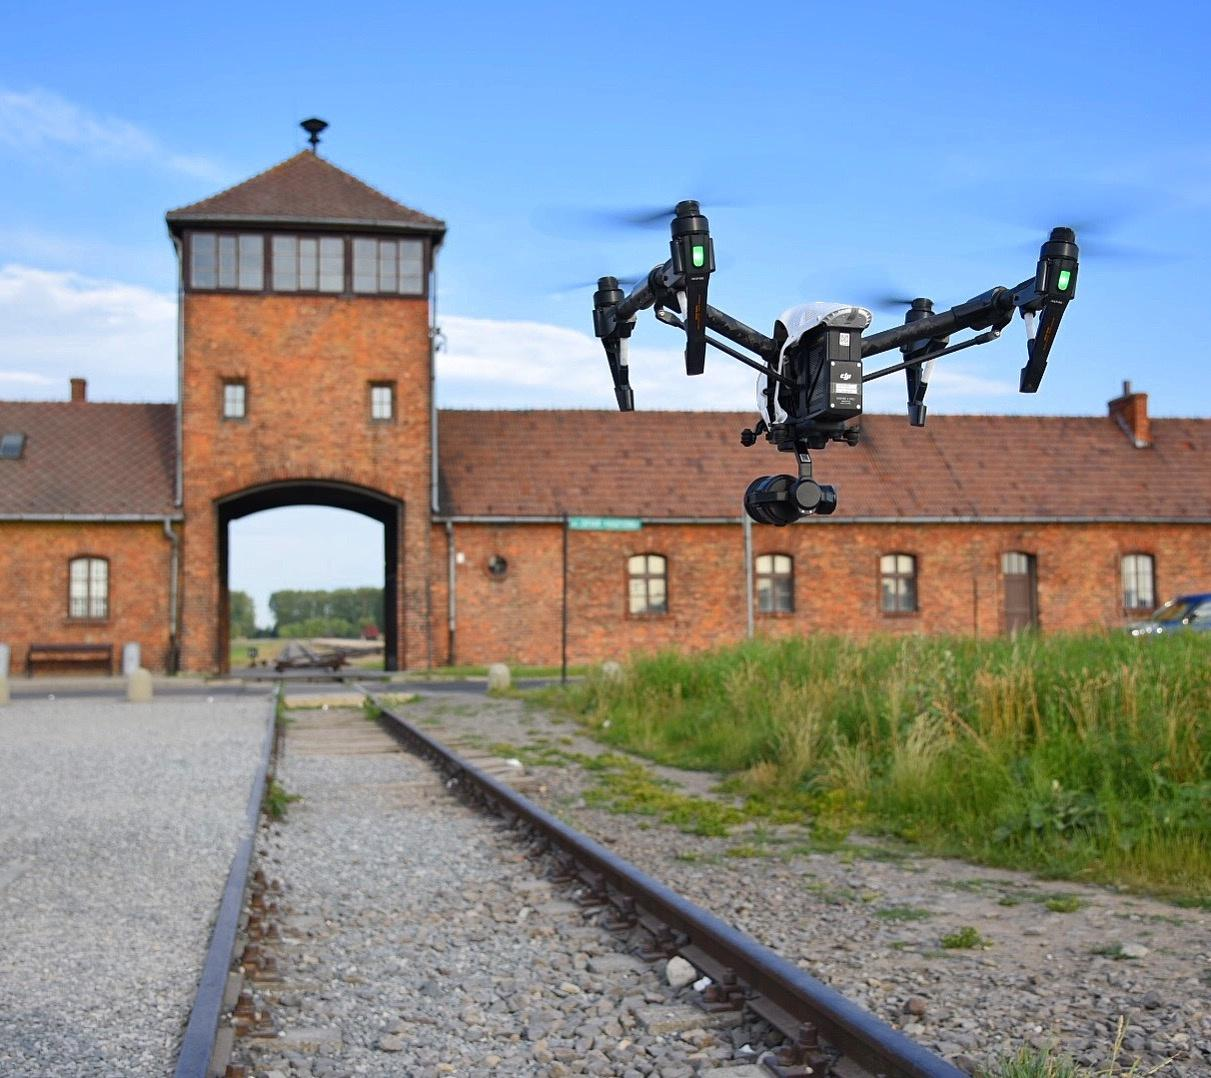 A shot of a drone filming the Eva Kor documentary at Auschwitz.